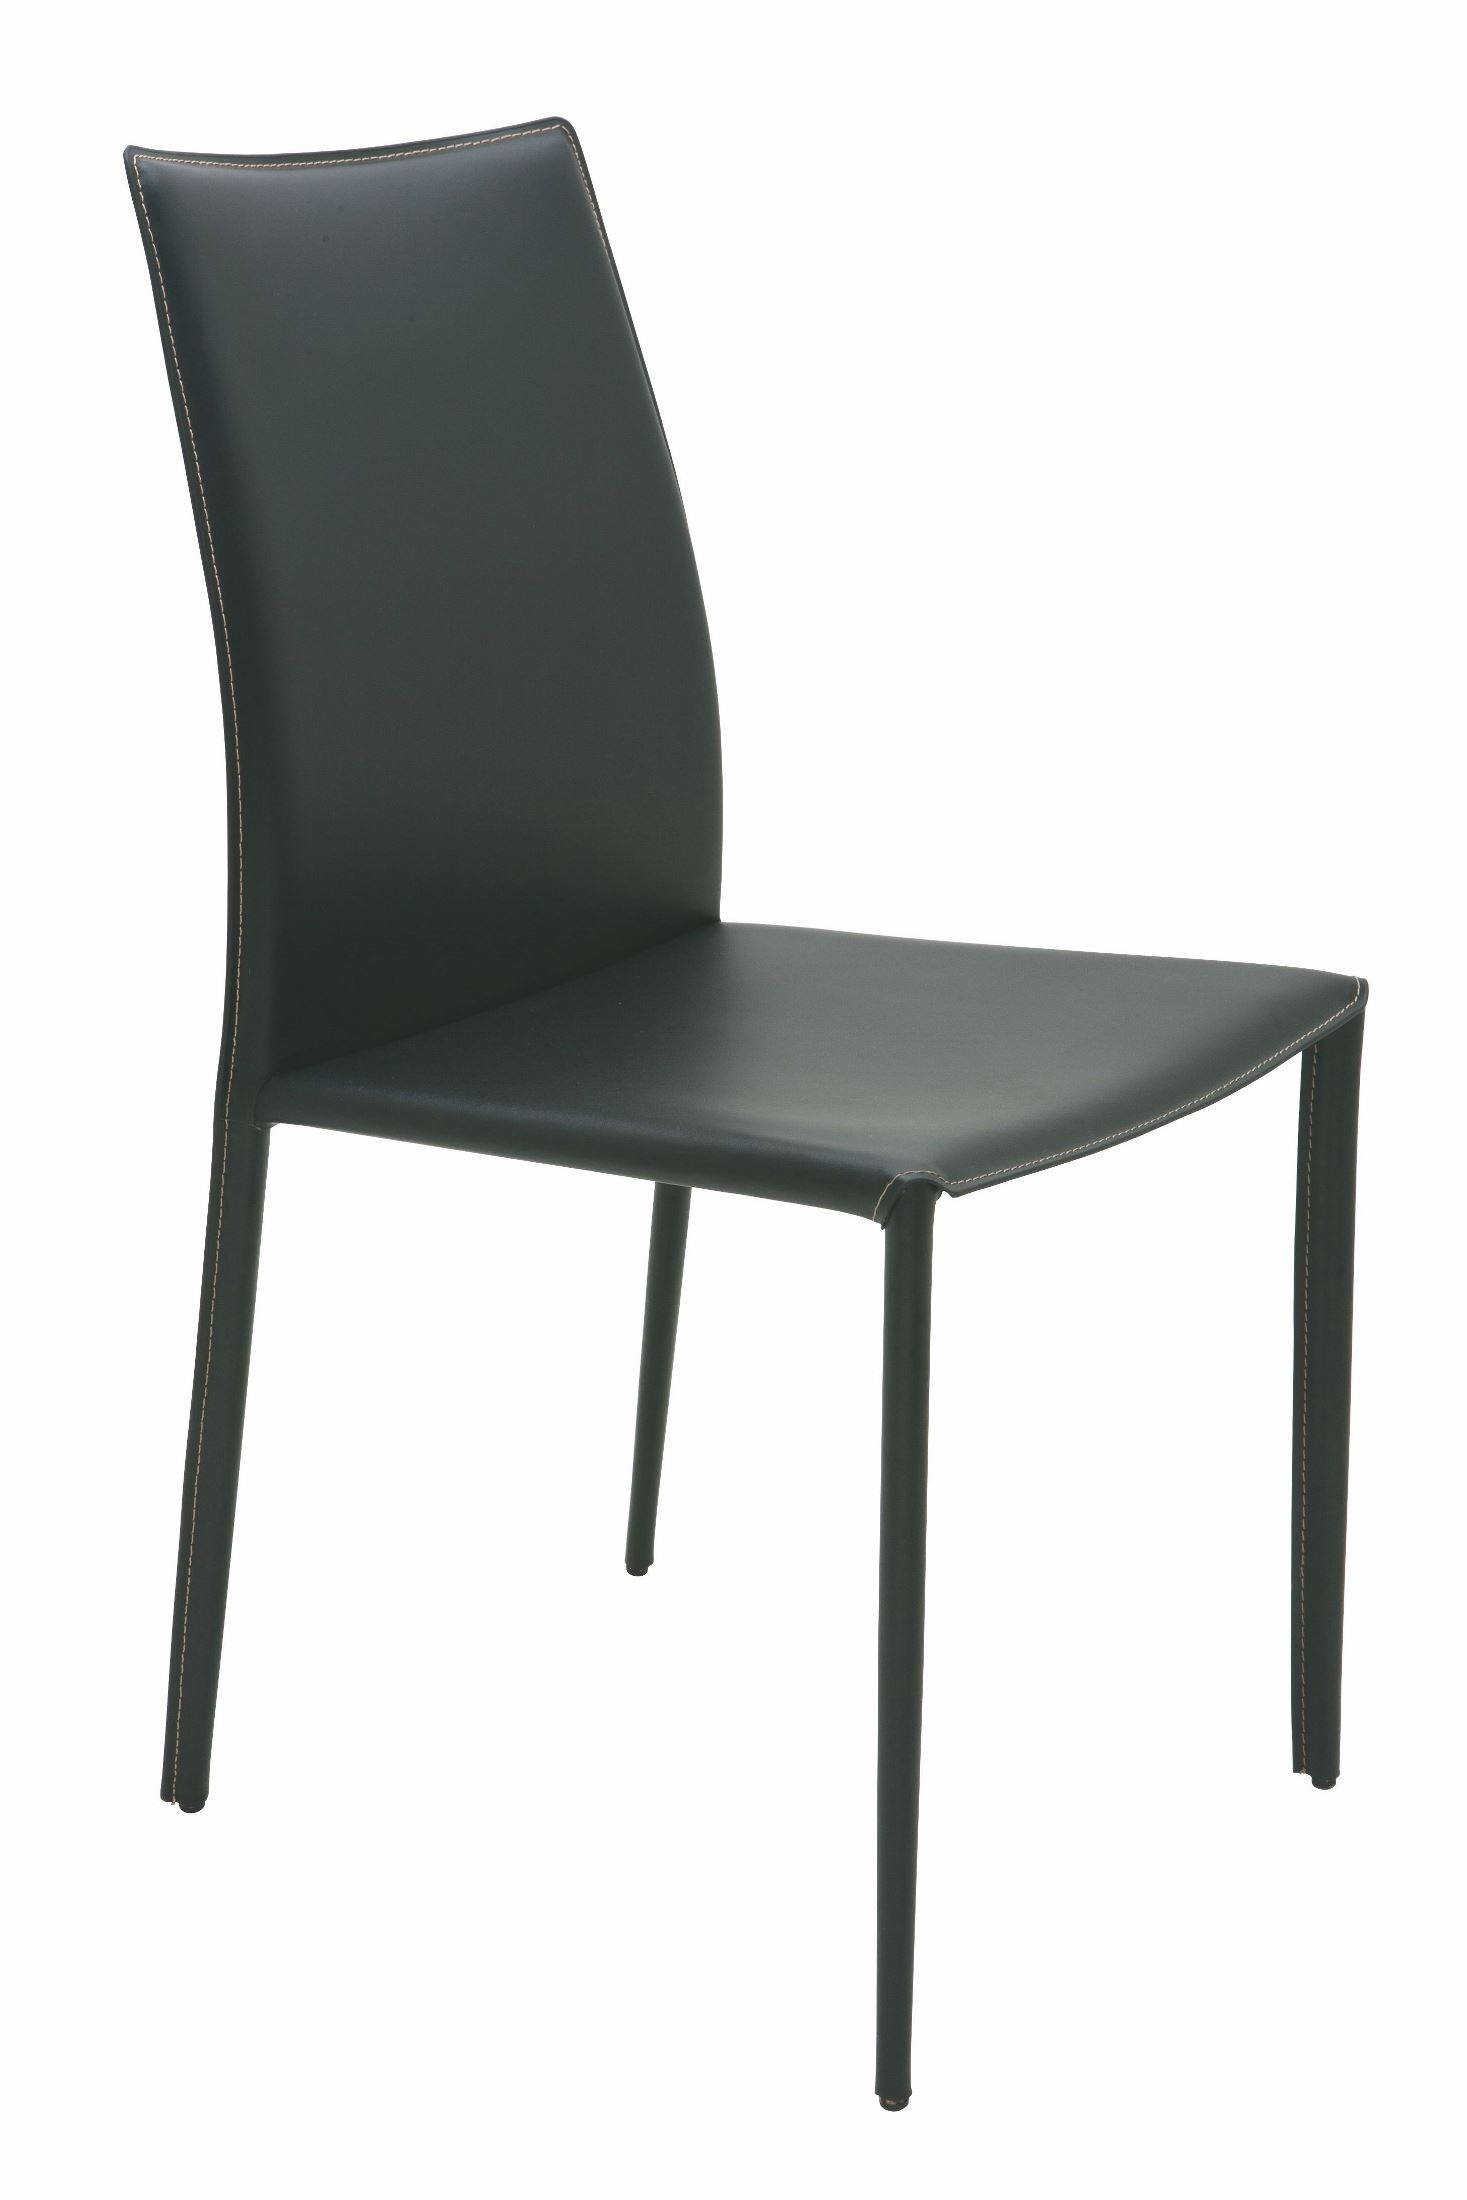 Sienna black leather dining chair hgga283 nuevo for Black leather dining chairs